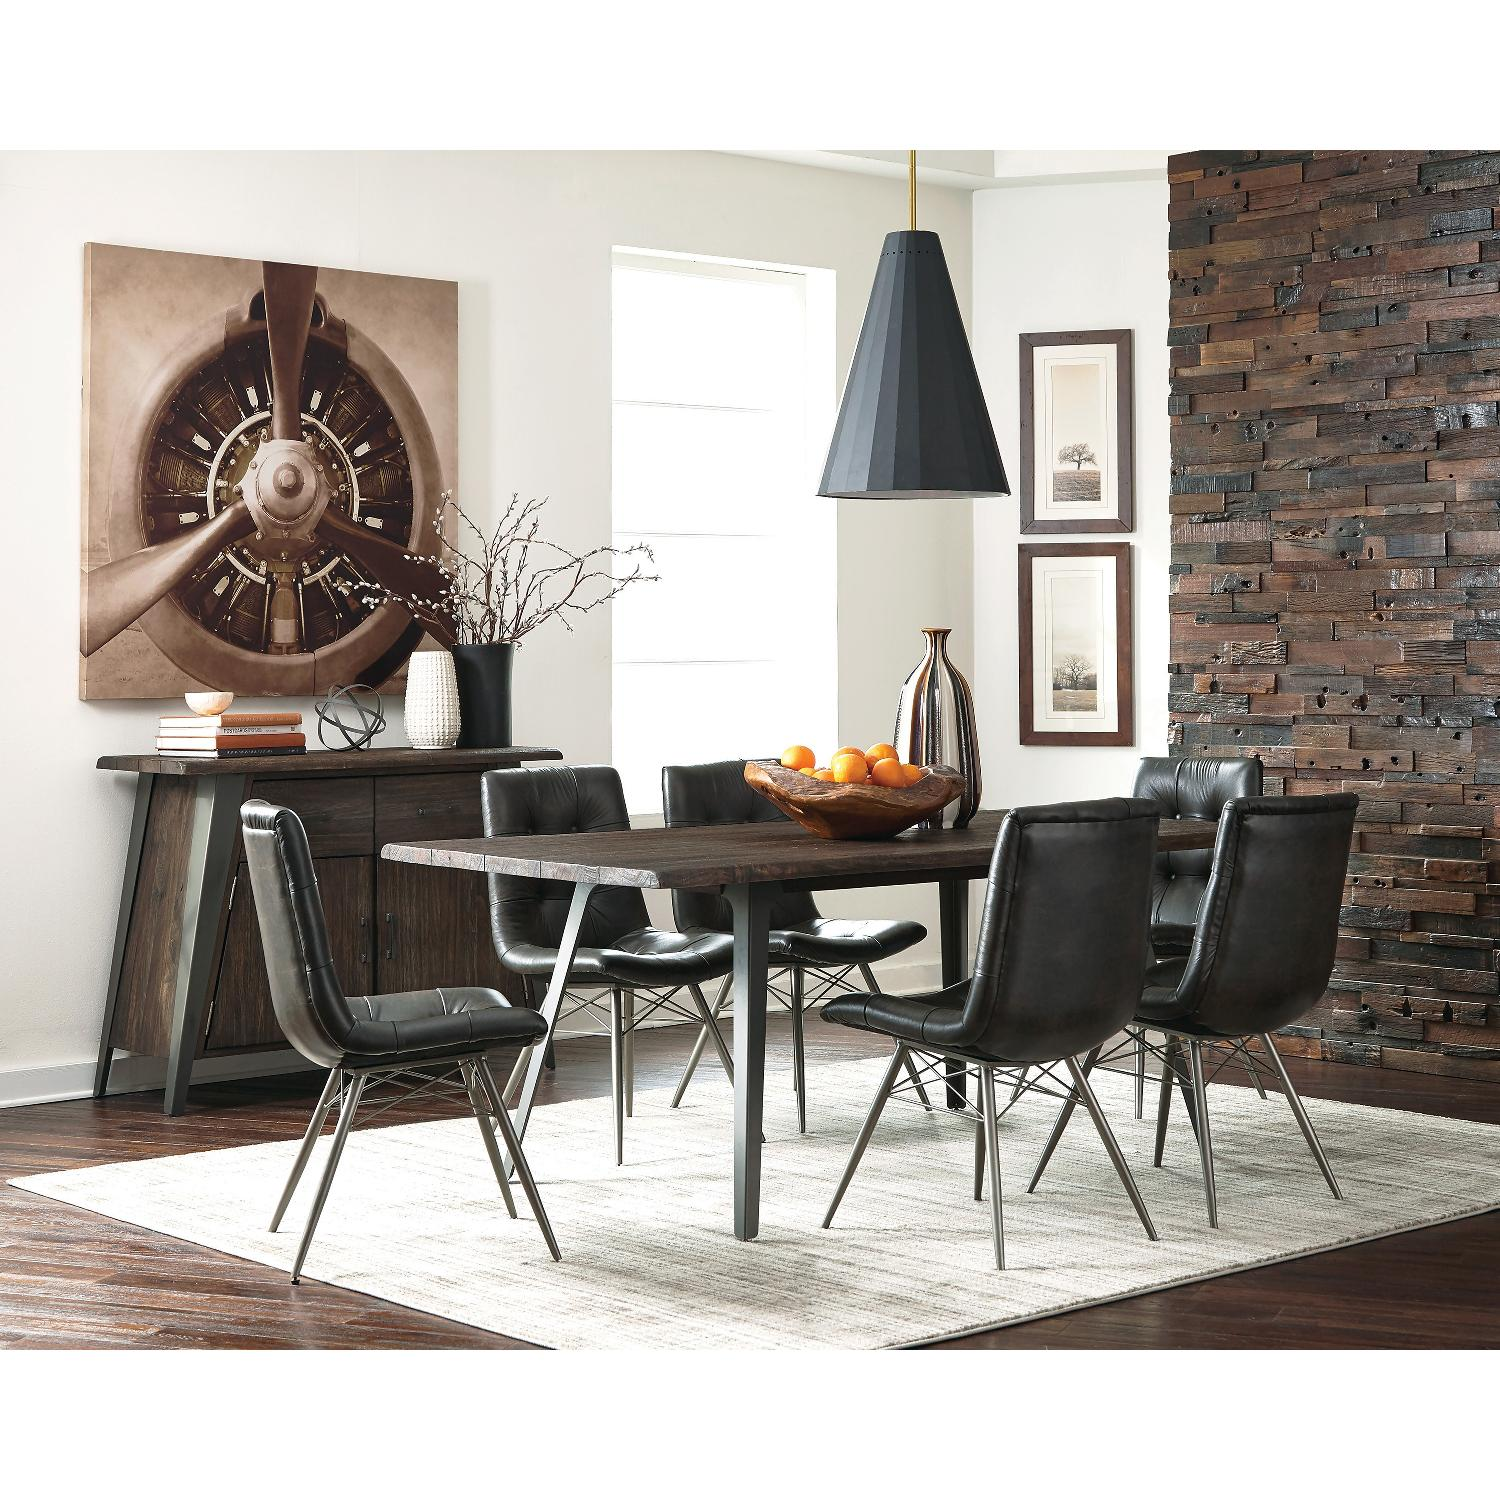 Industrial Vintage Style Dining Table w/ Handcrafted Top - image-3